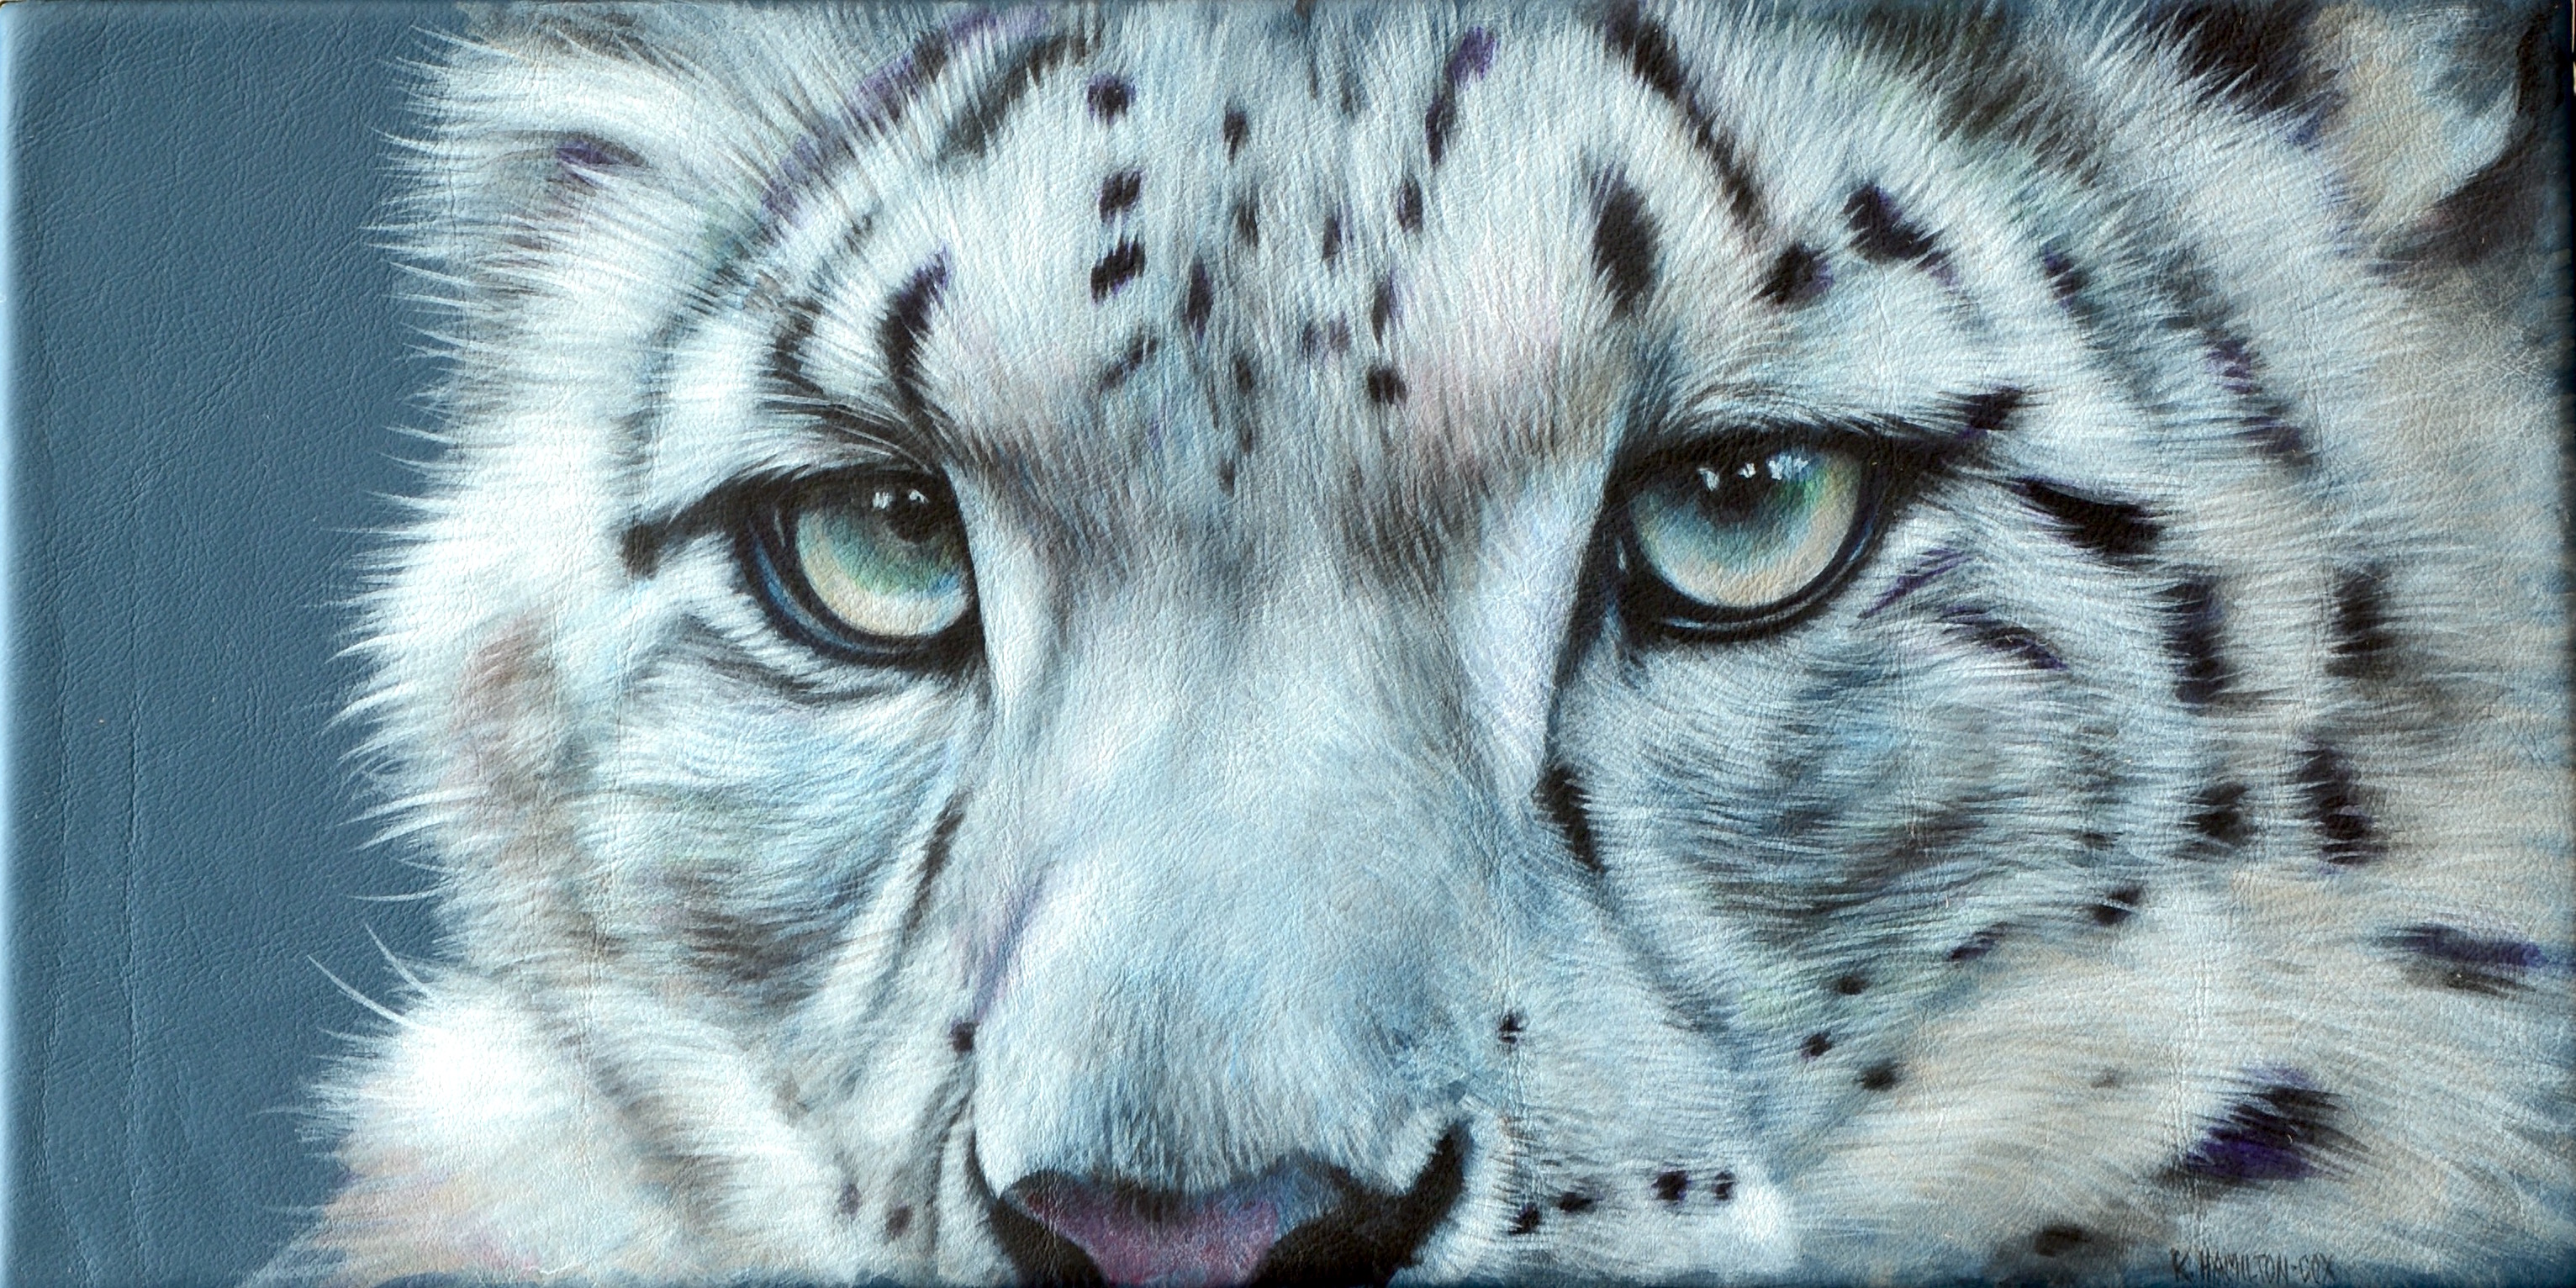 Cats Eyes Series - snow leopard